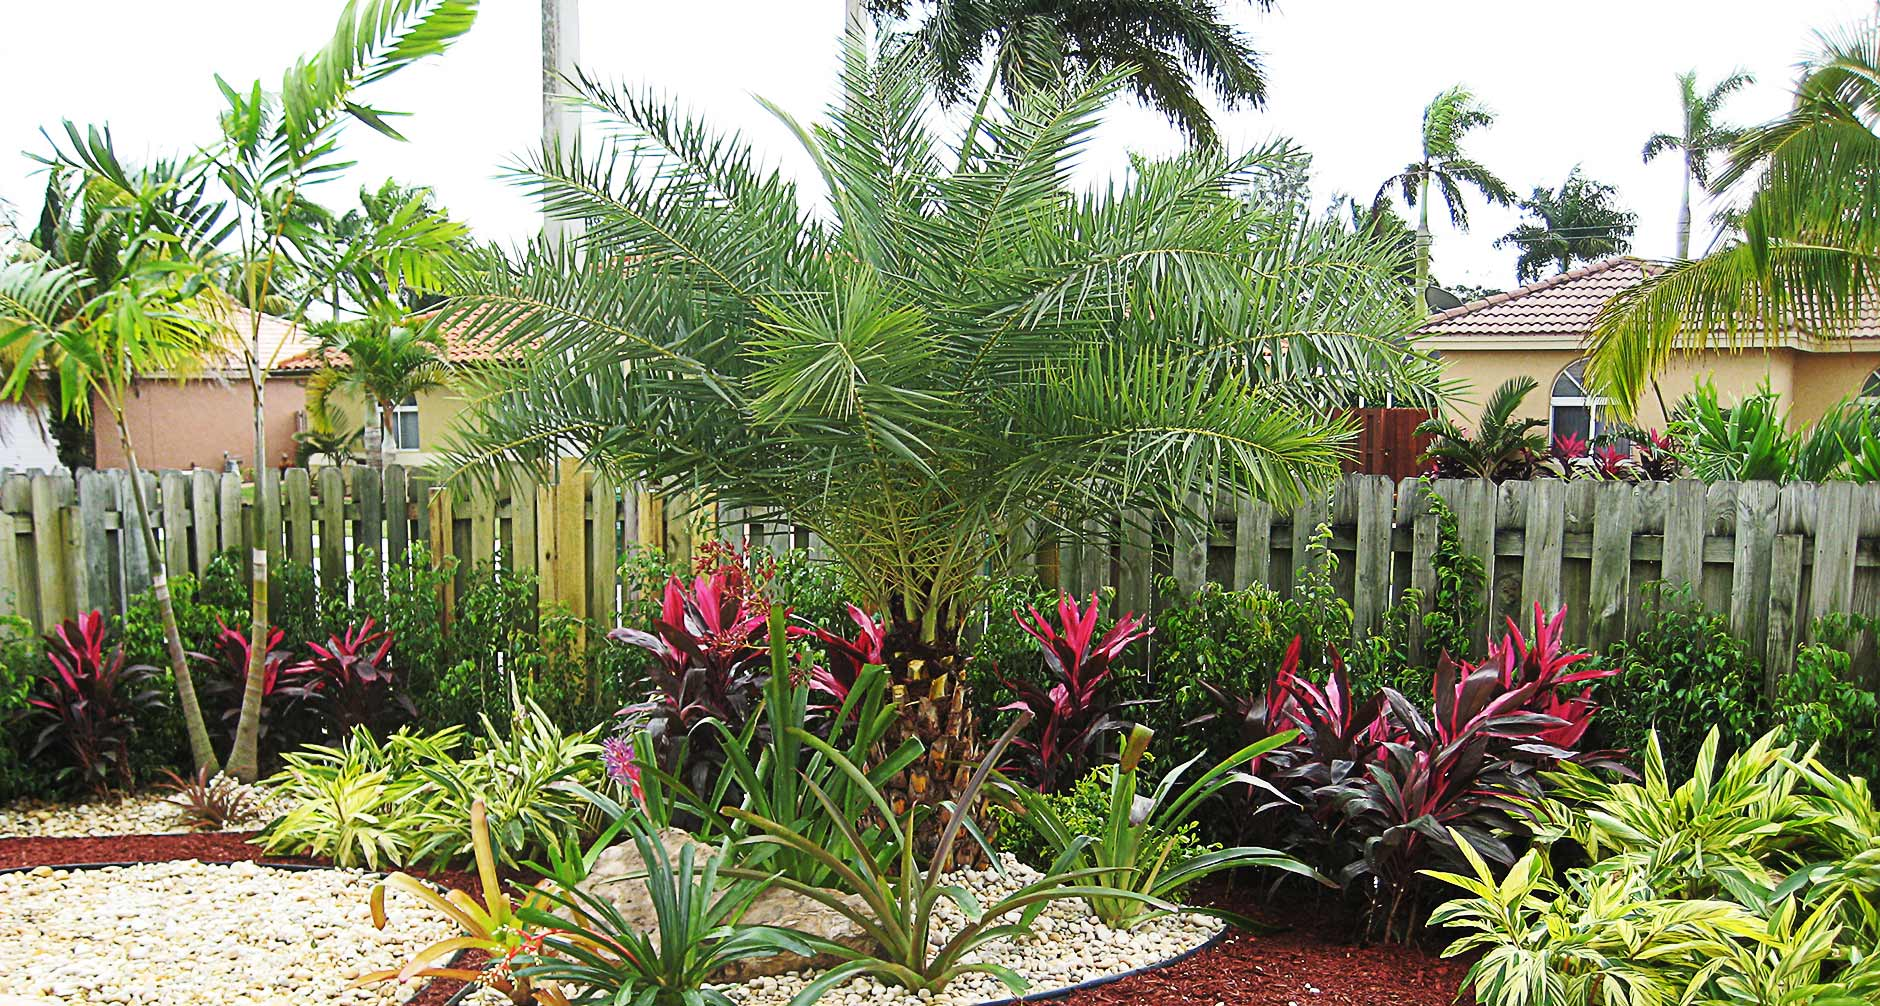 Bl landscape design photos florida diy for Florida landscape design